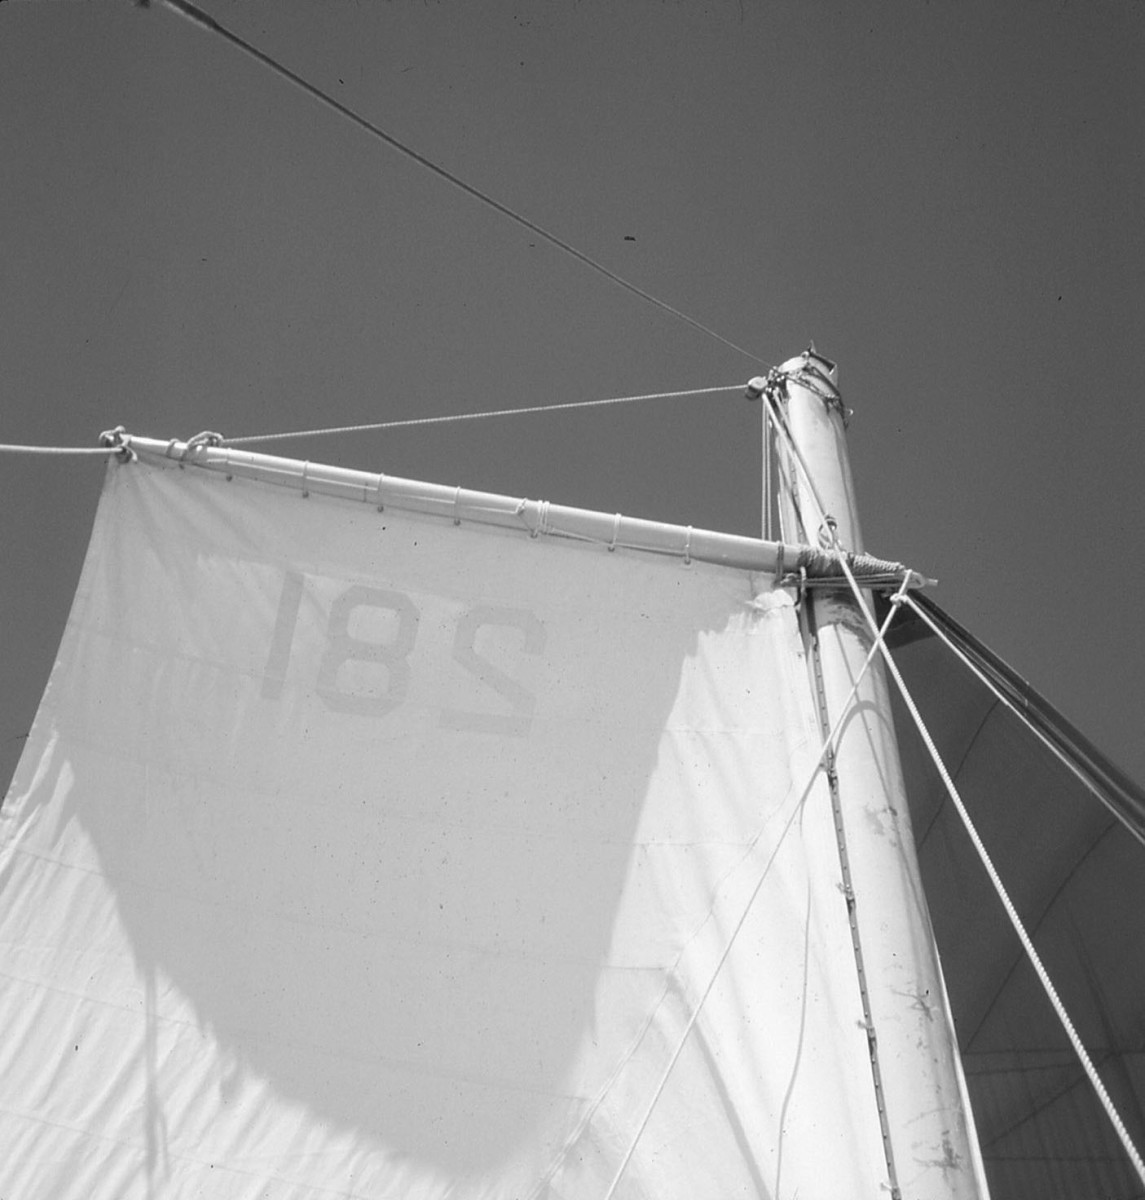 The jury-rigged mainsail working as a gaff rig using the spinnaker pole.